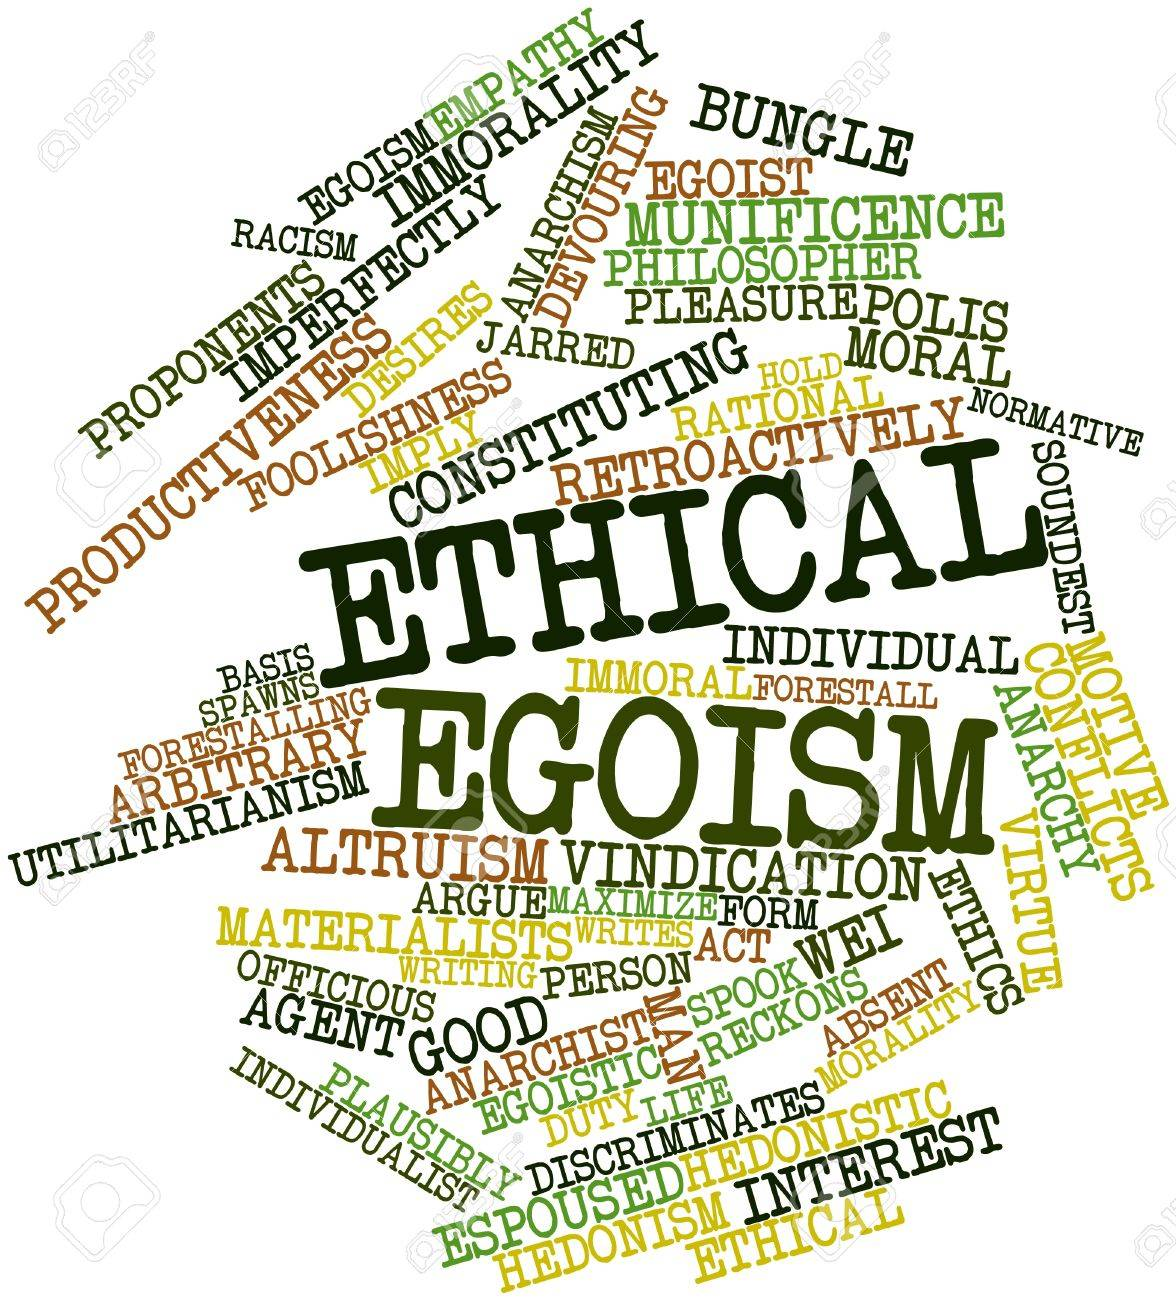 egoism essay ethical egoism essaysegoism develop the criticism that ethical egoism is an inadequate moral theory because it does not resolve moral conflicts